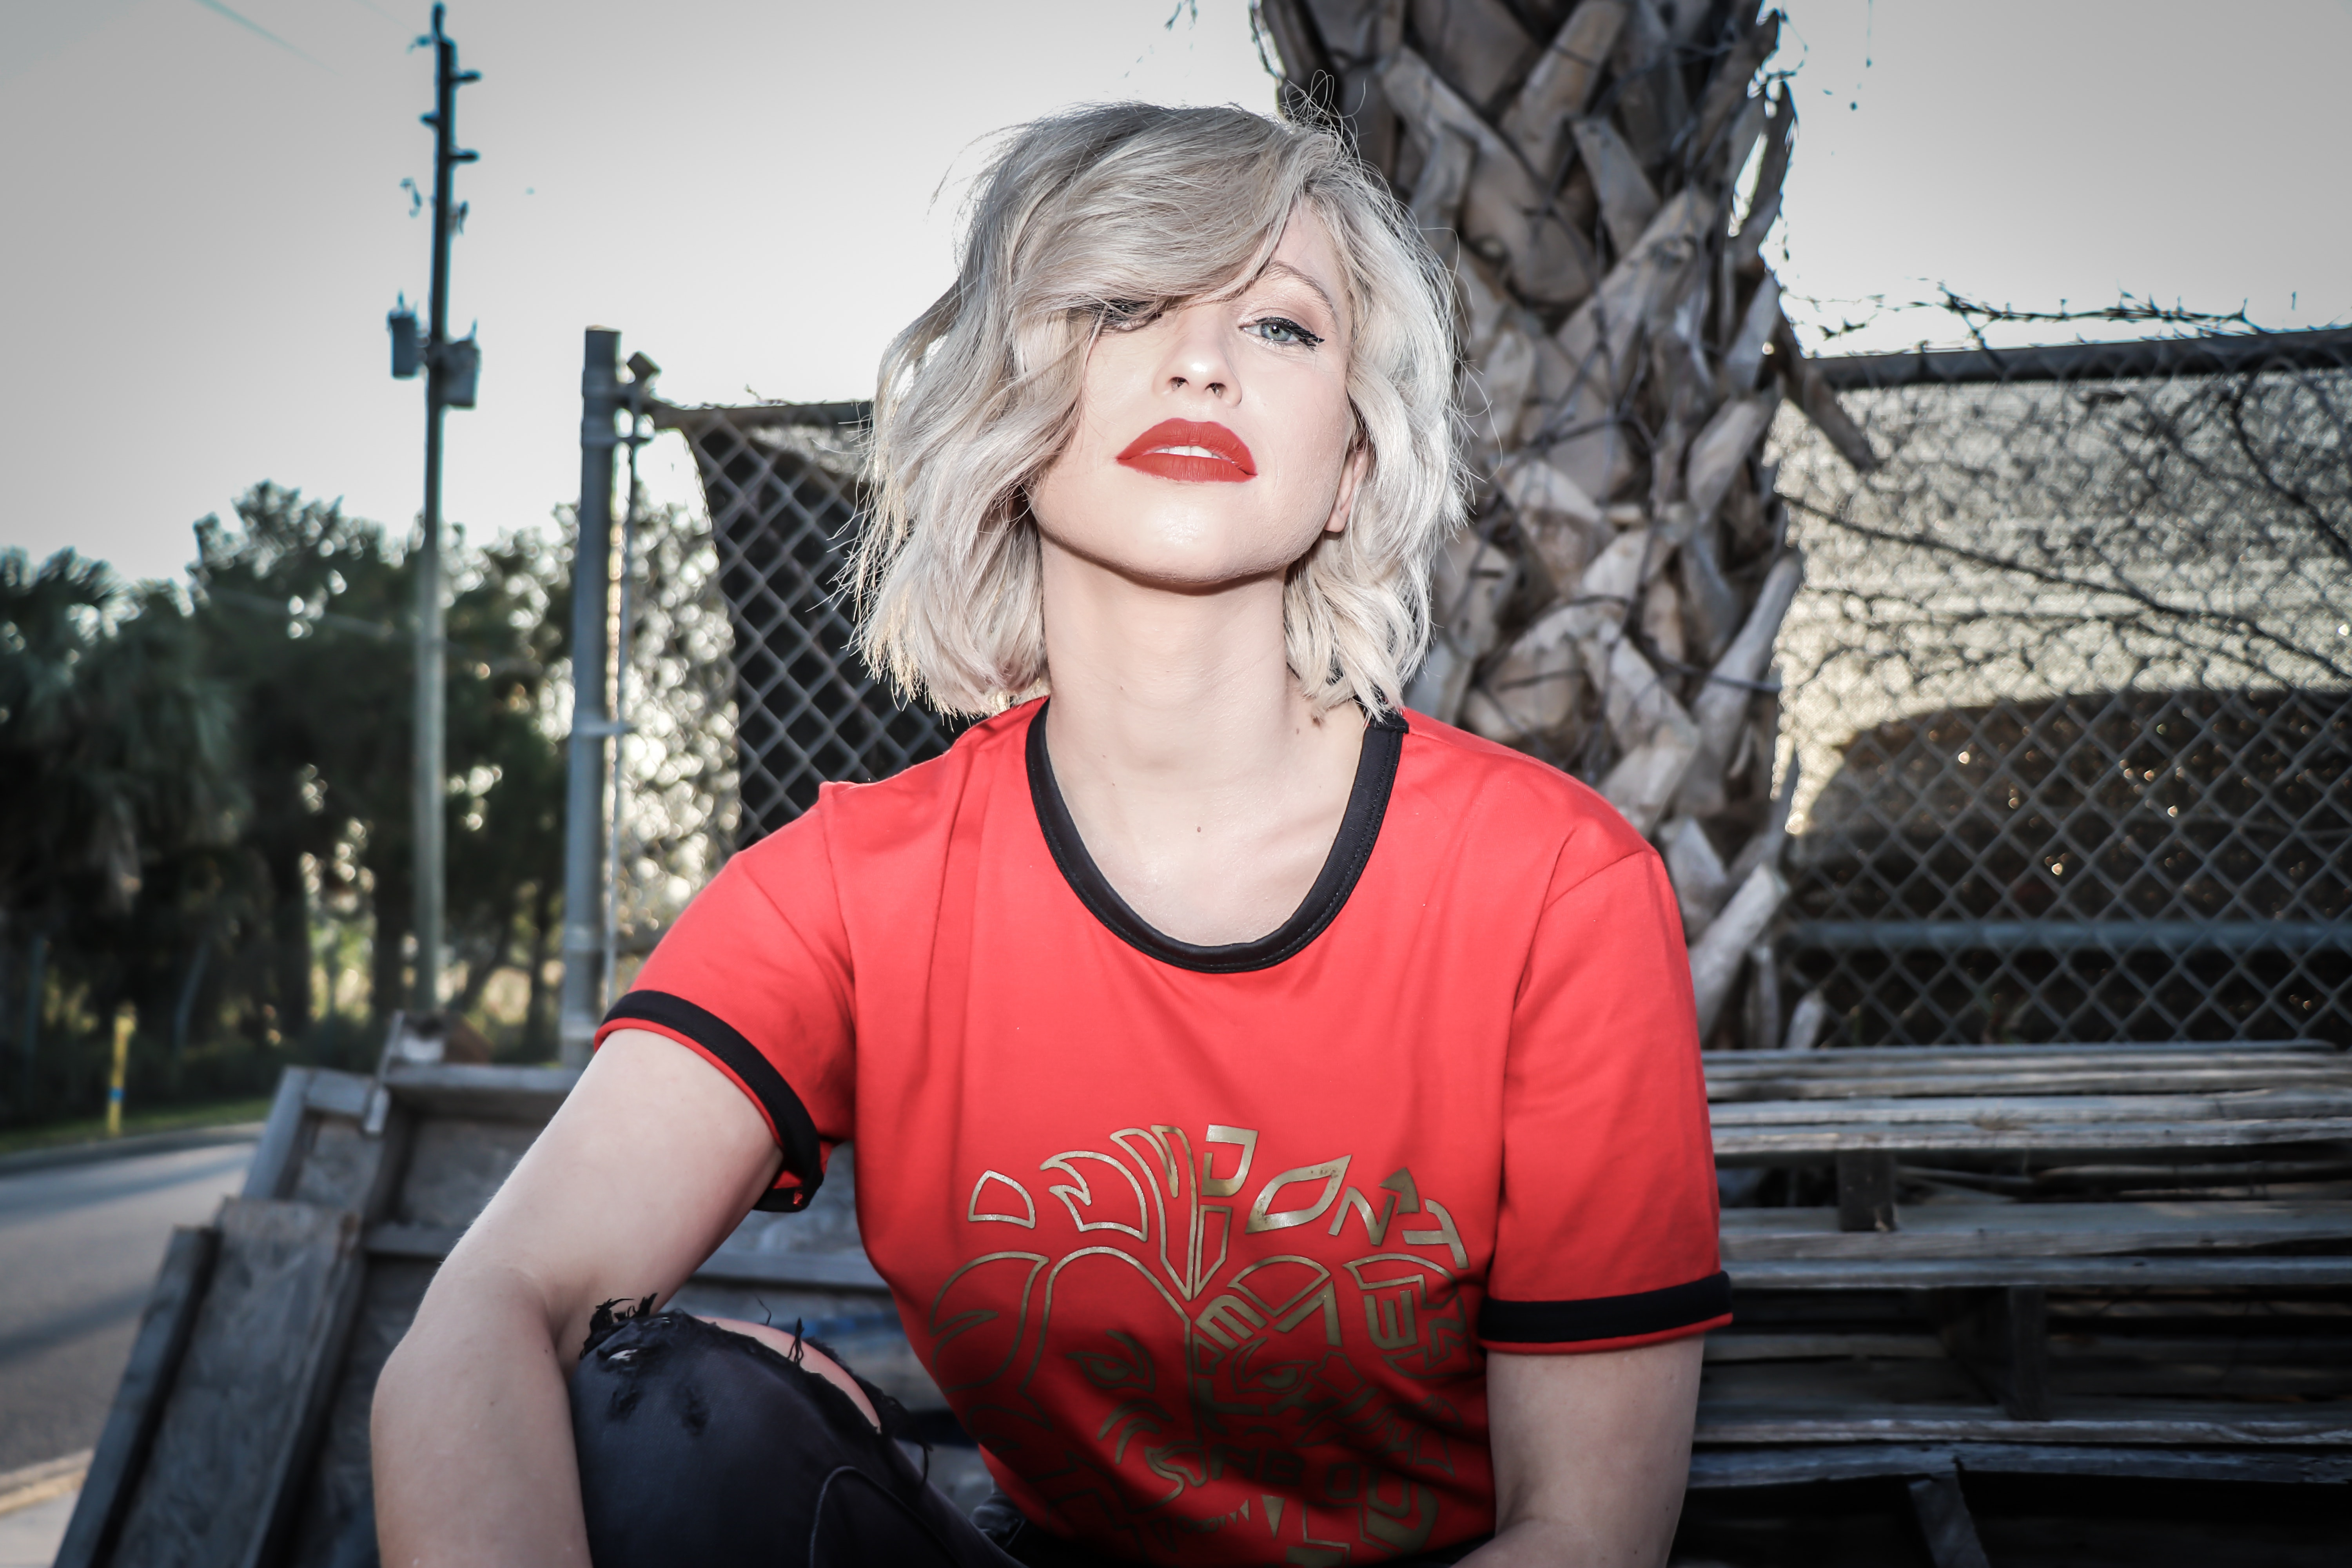 Woman in Red and Black Crew-neck T-shirt, Trees, Street, Pretty, Urban, HQ Photo